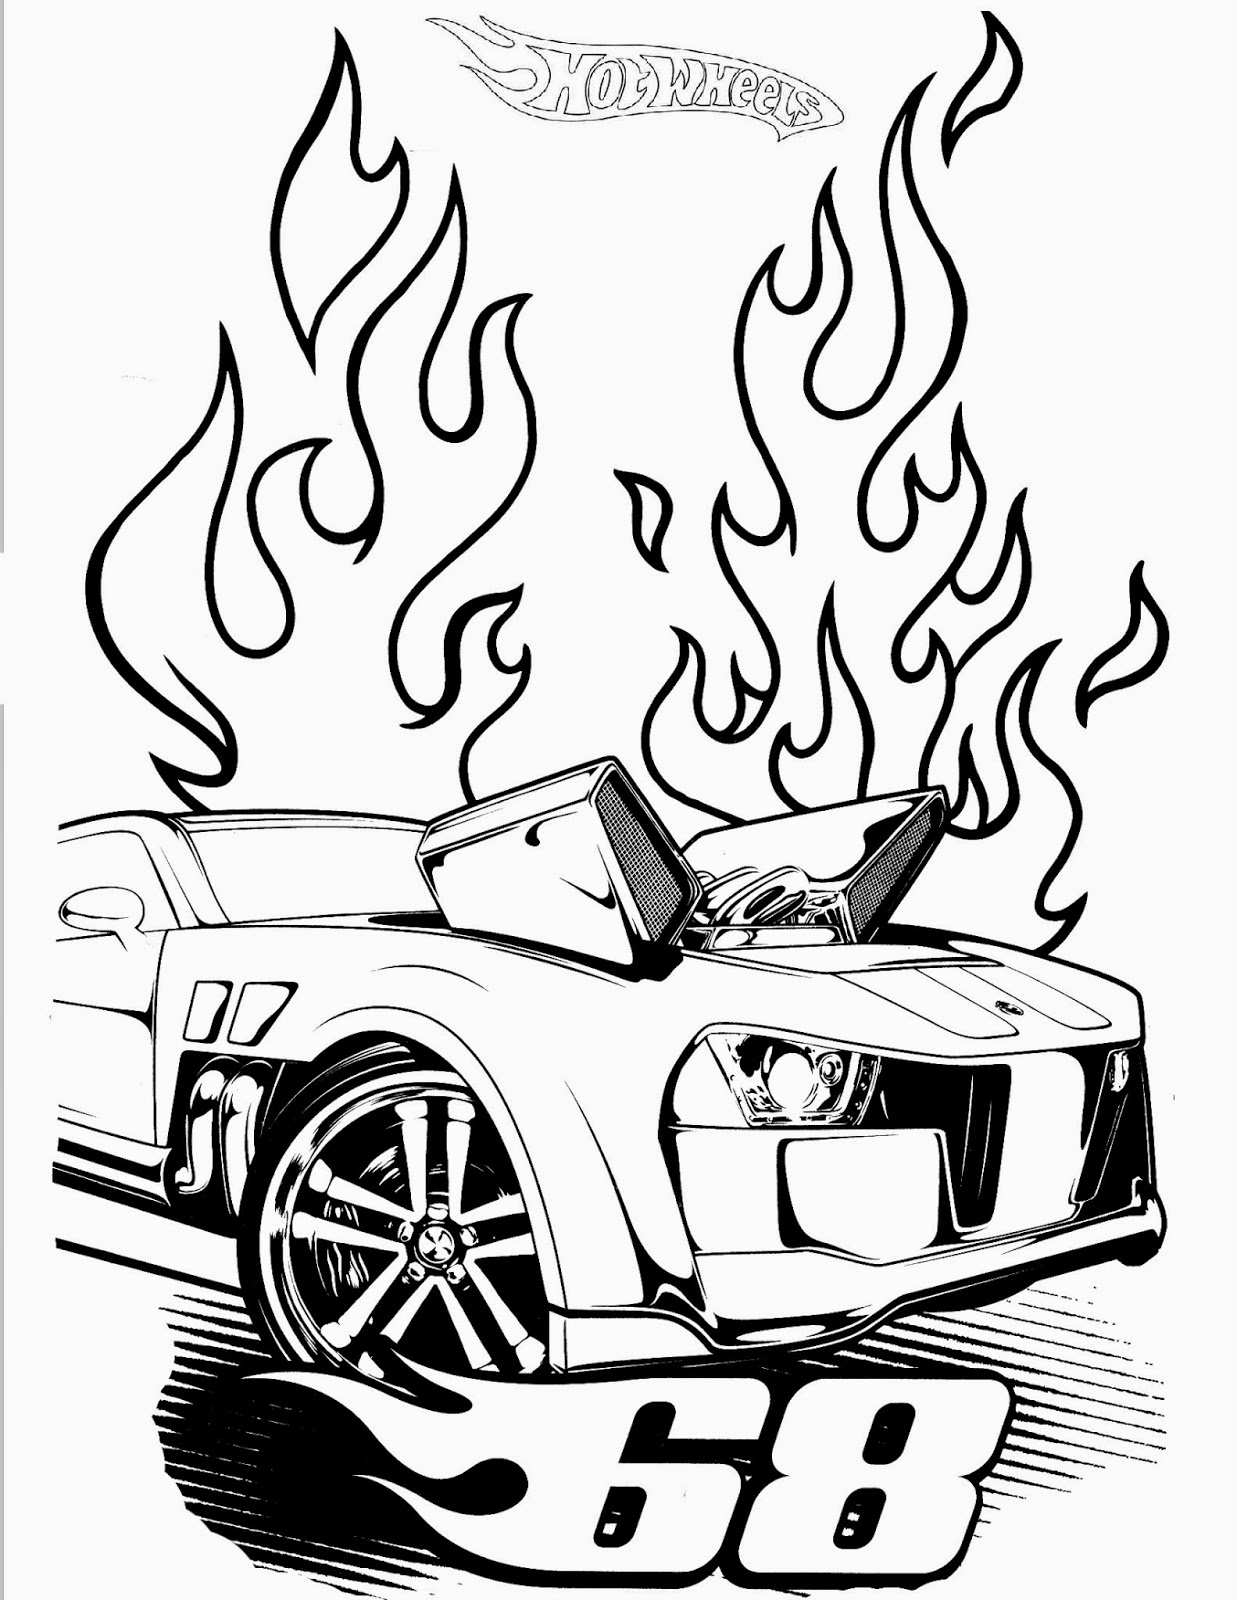 hotwheels coloring pages hot wheels racing league hot wheels coloring pages set 4 hotwheels pages coloring